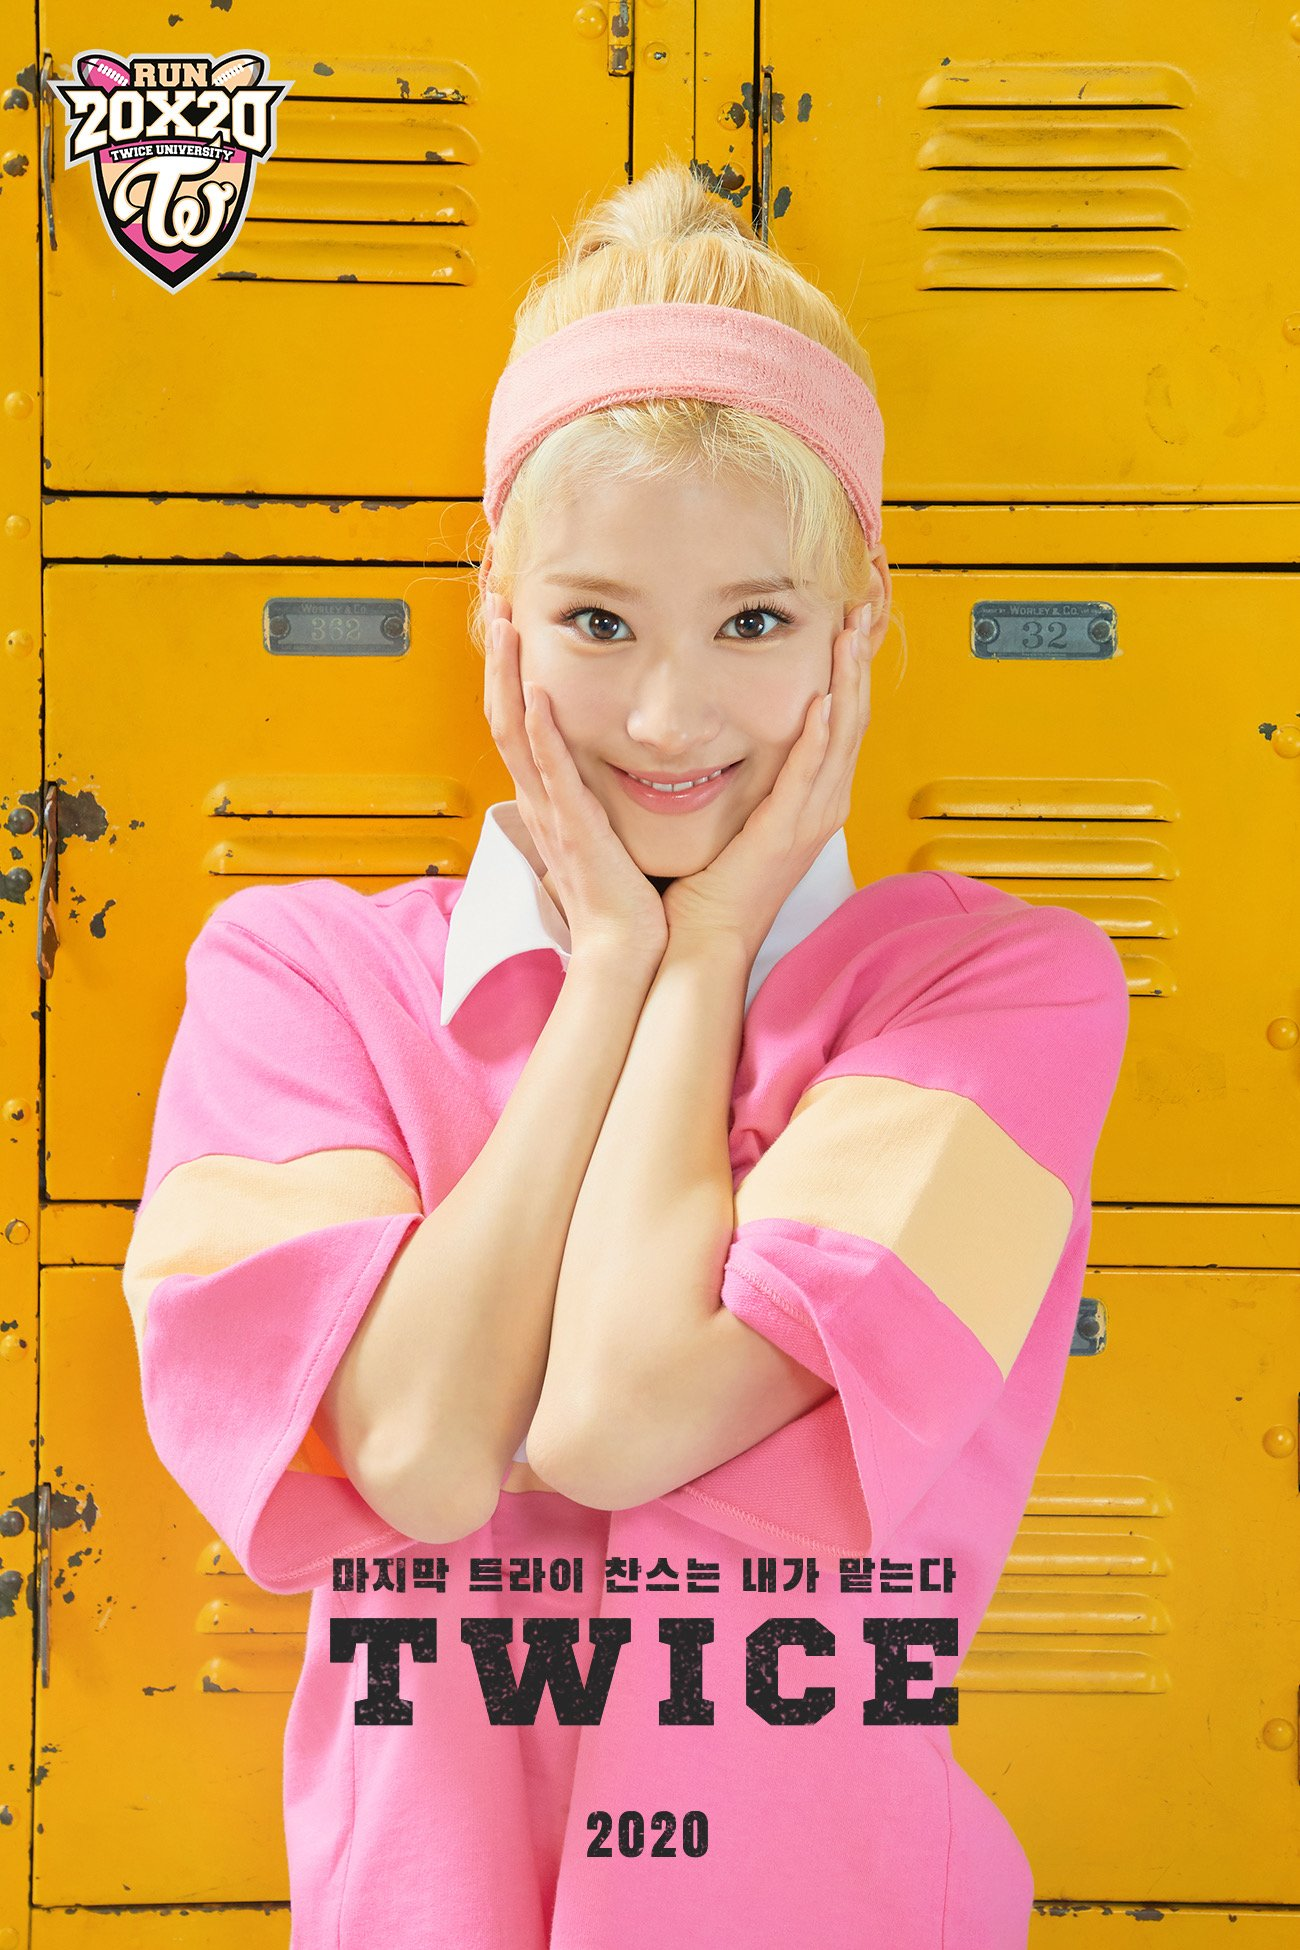 TWICE Season's Greetings 2020 Twice University Rugby Team Sana